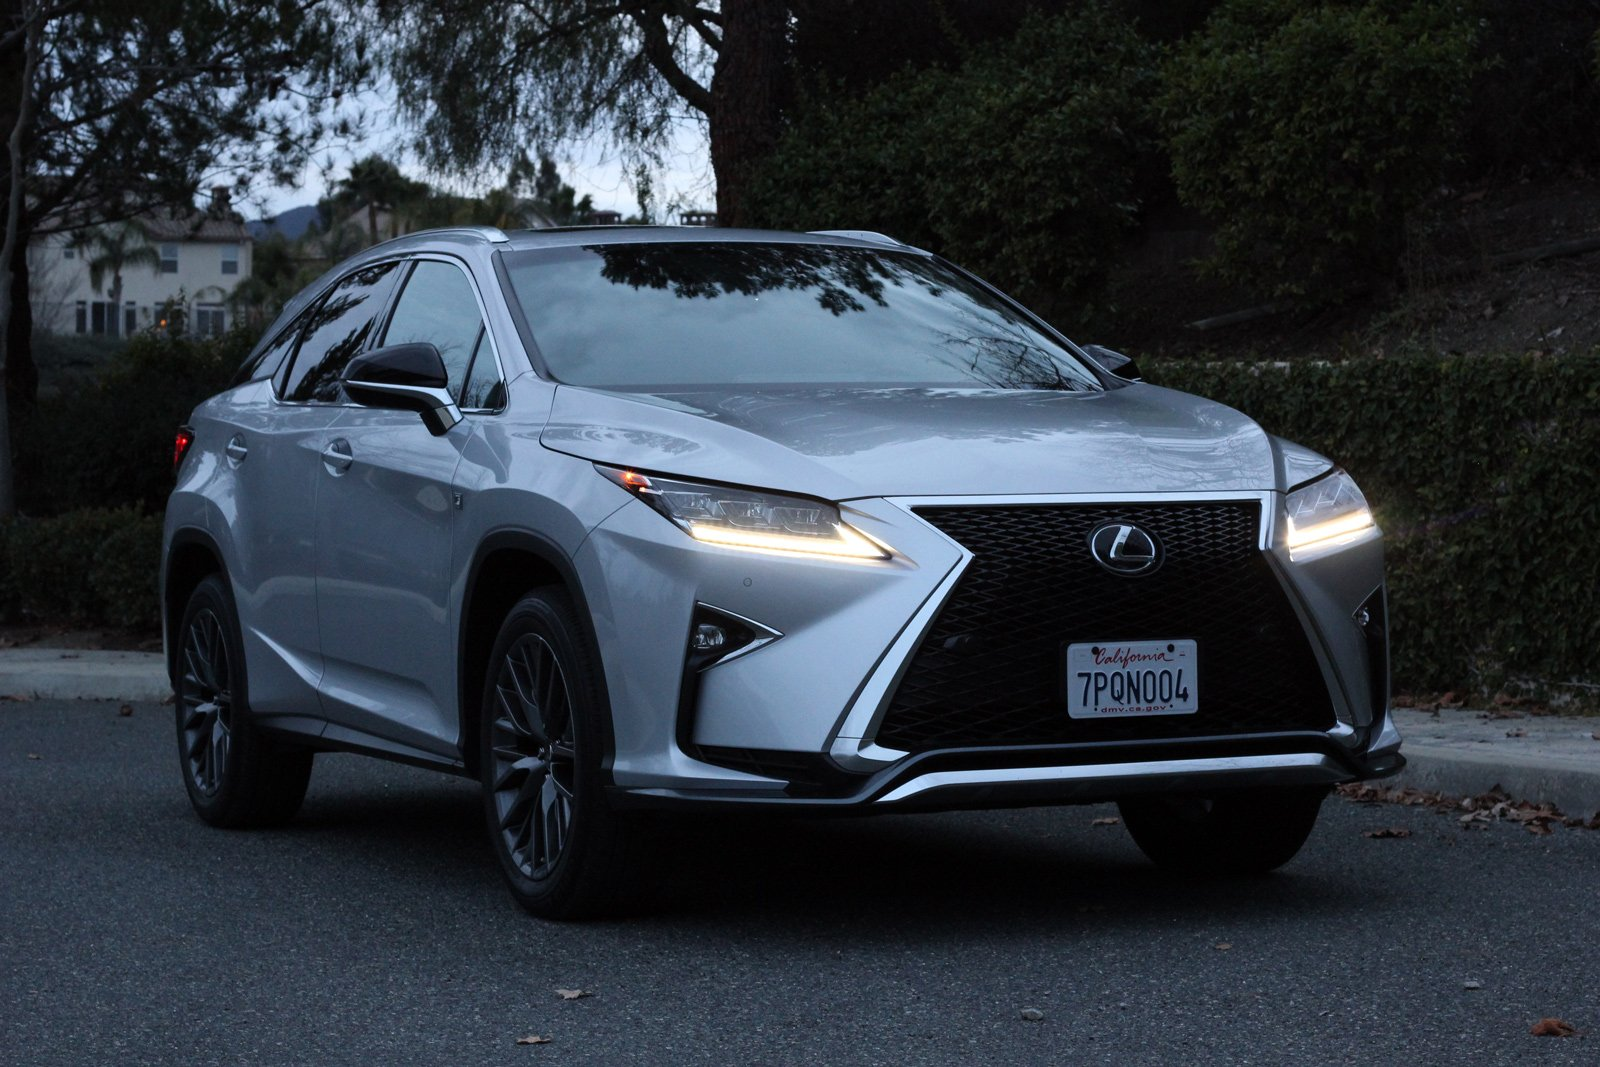 lexus bloomberg ur f review articles rx the news overworked sport crossover